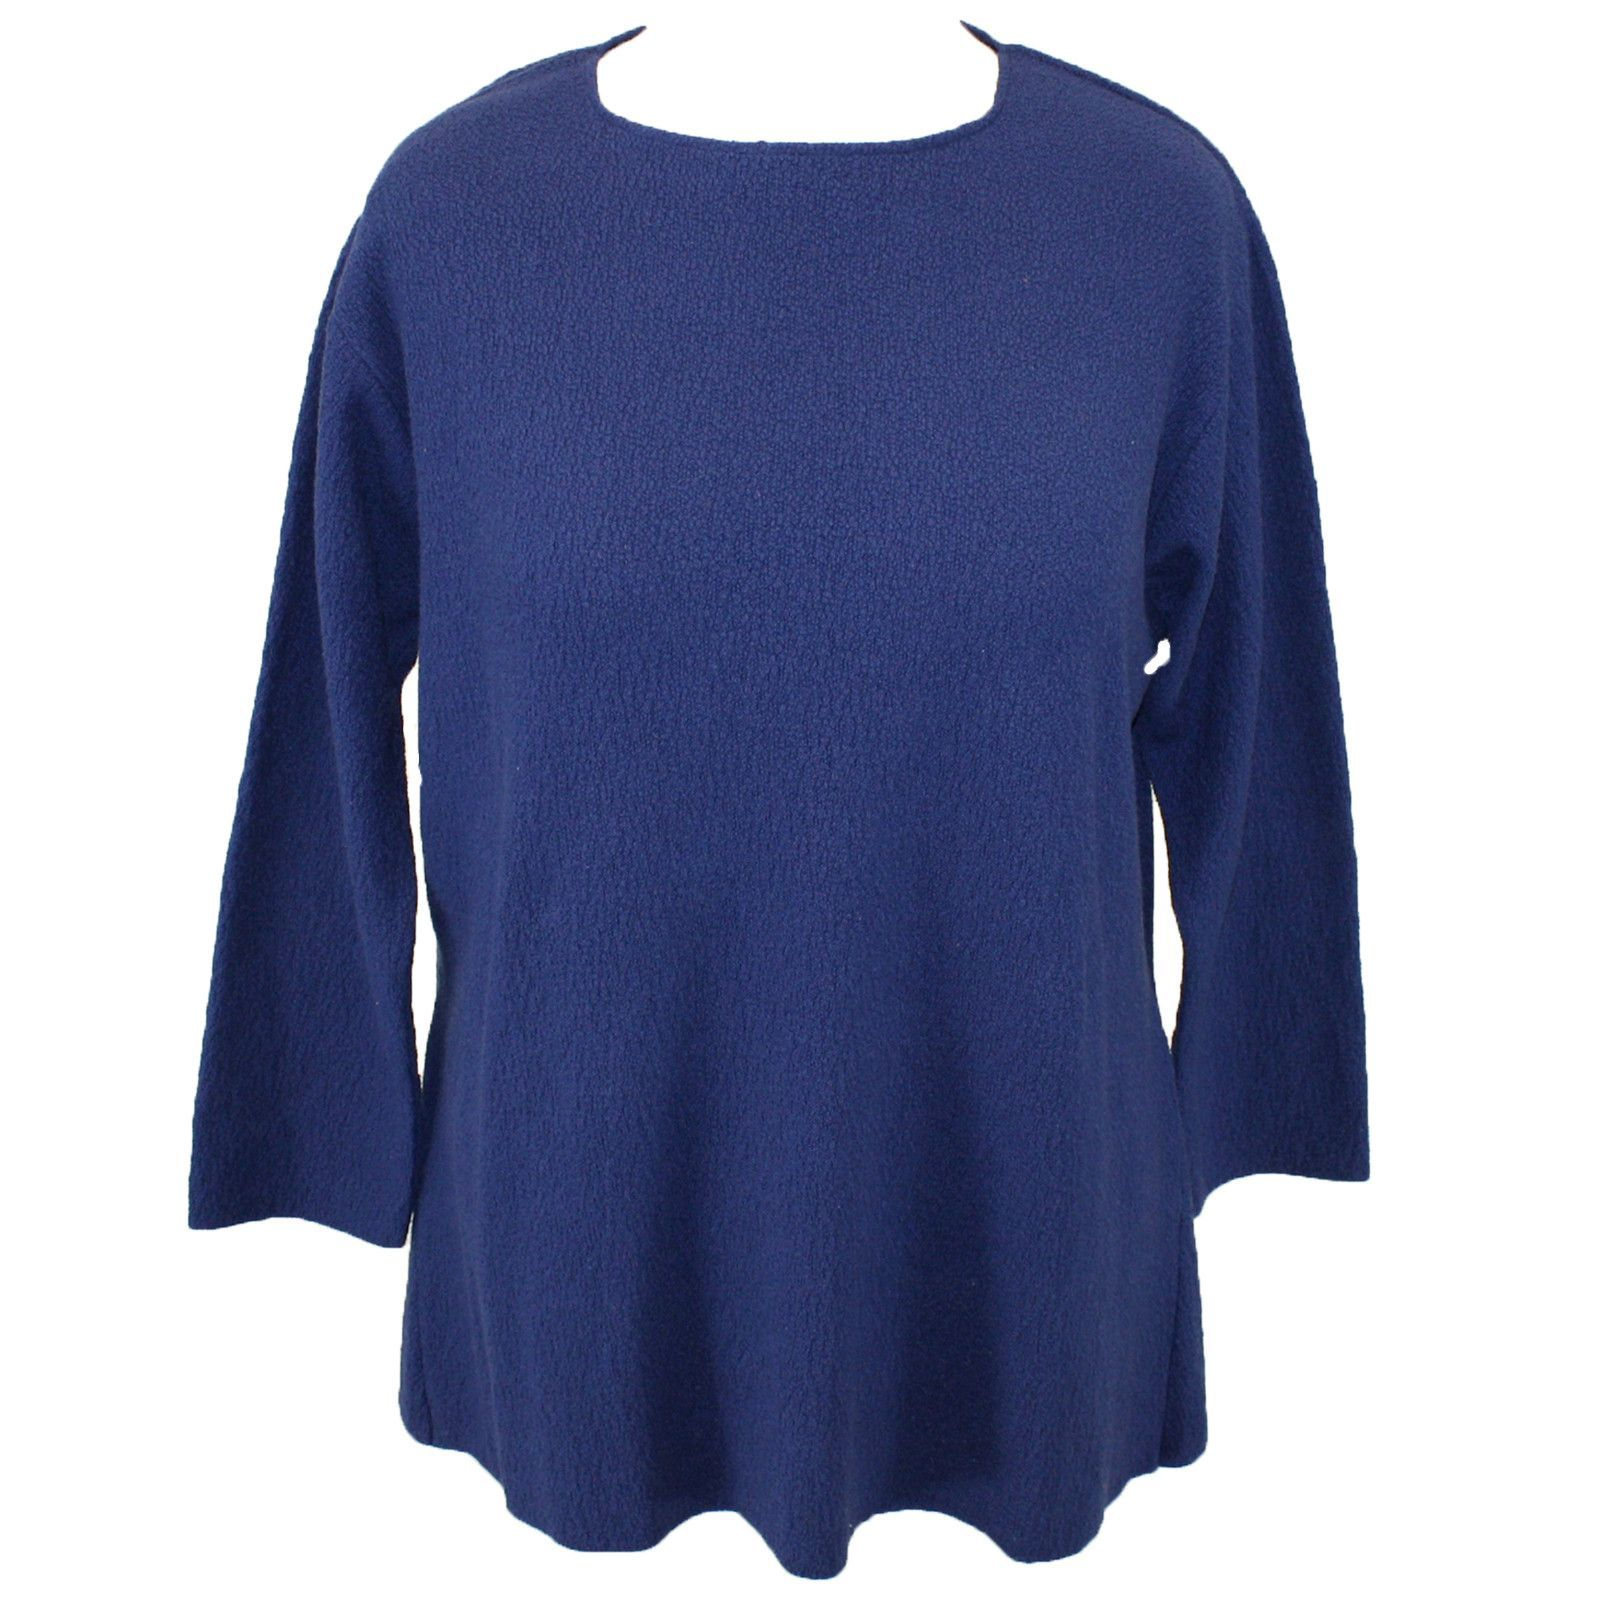 Blouse 2X 3X USA Made NEW Margaret Winters Thick Blue Cotton Cardigan Sweater